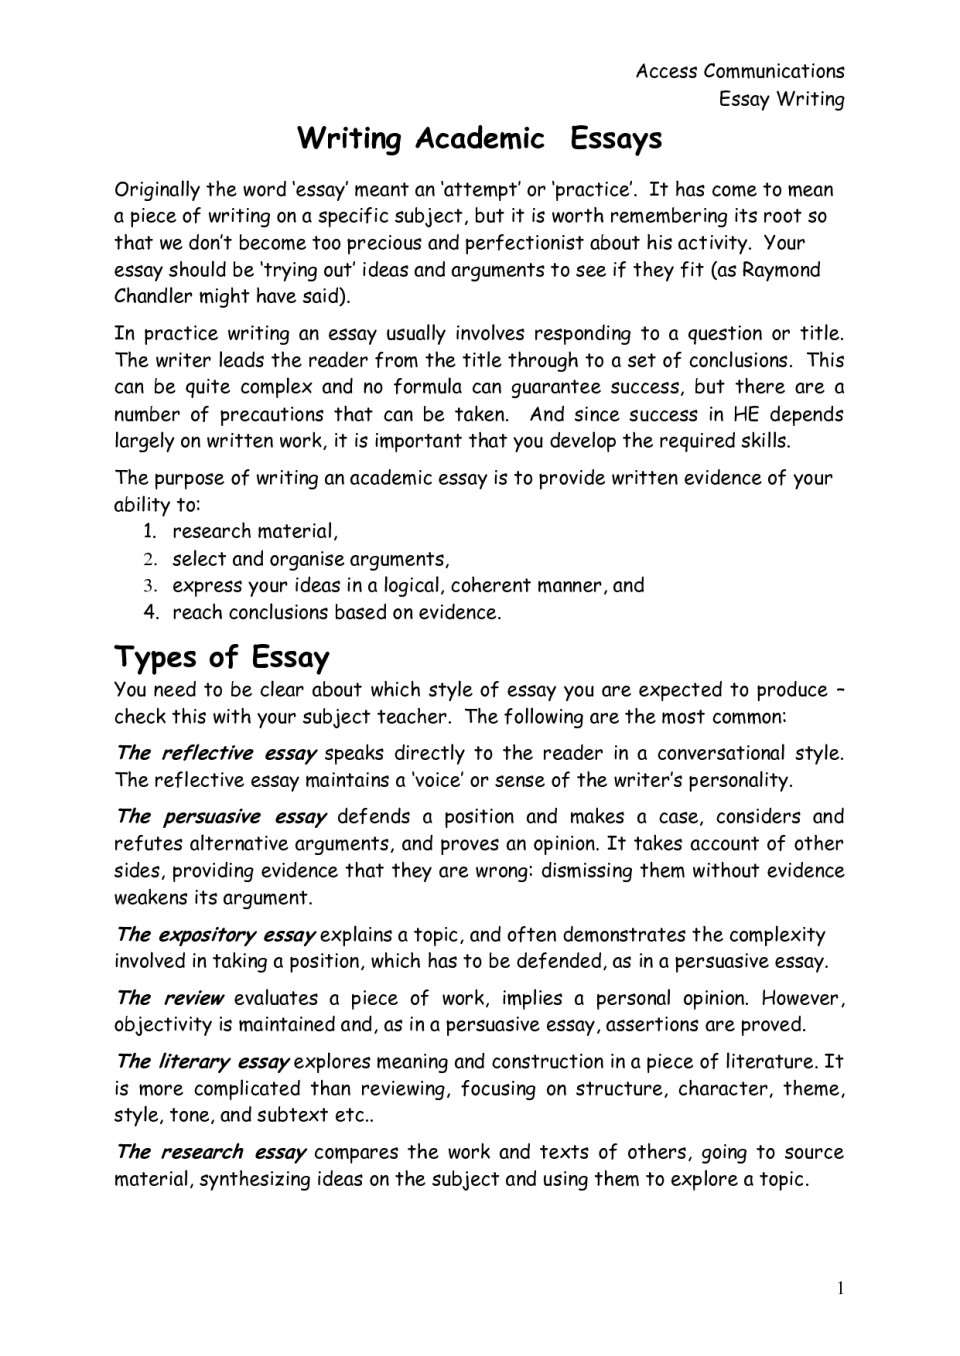 019 Write My Essay For Me Example Surprising College Application Free Online Uk 960